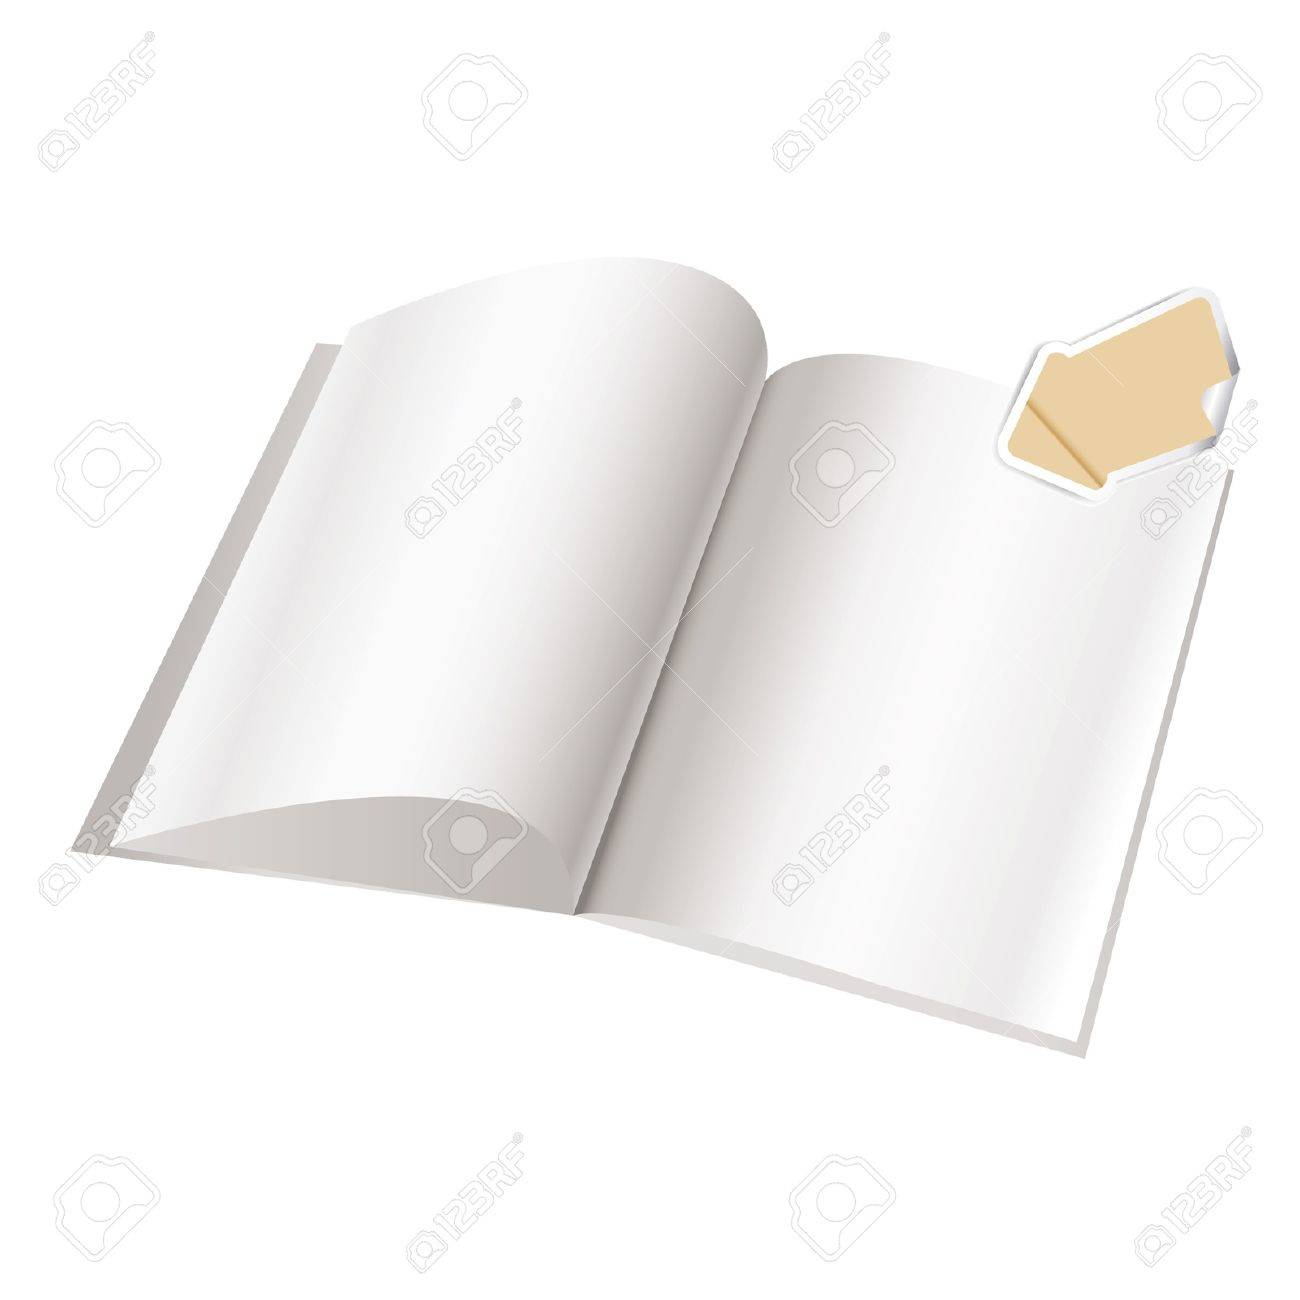 Magazine blank page template for design Stock Vector - 9504034